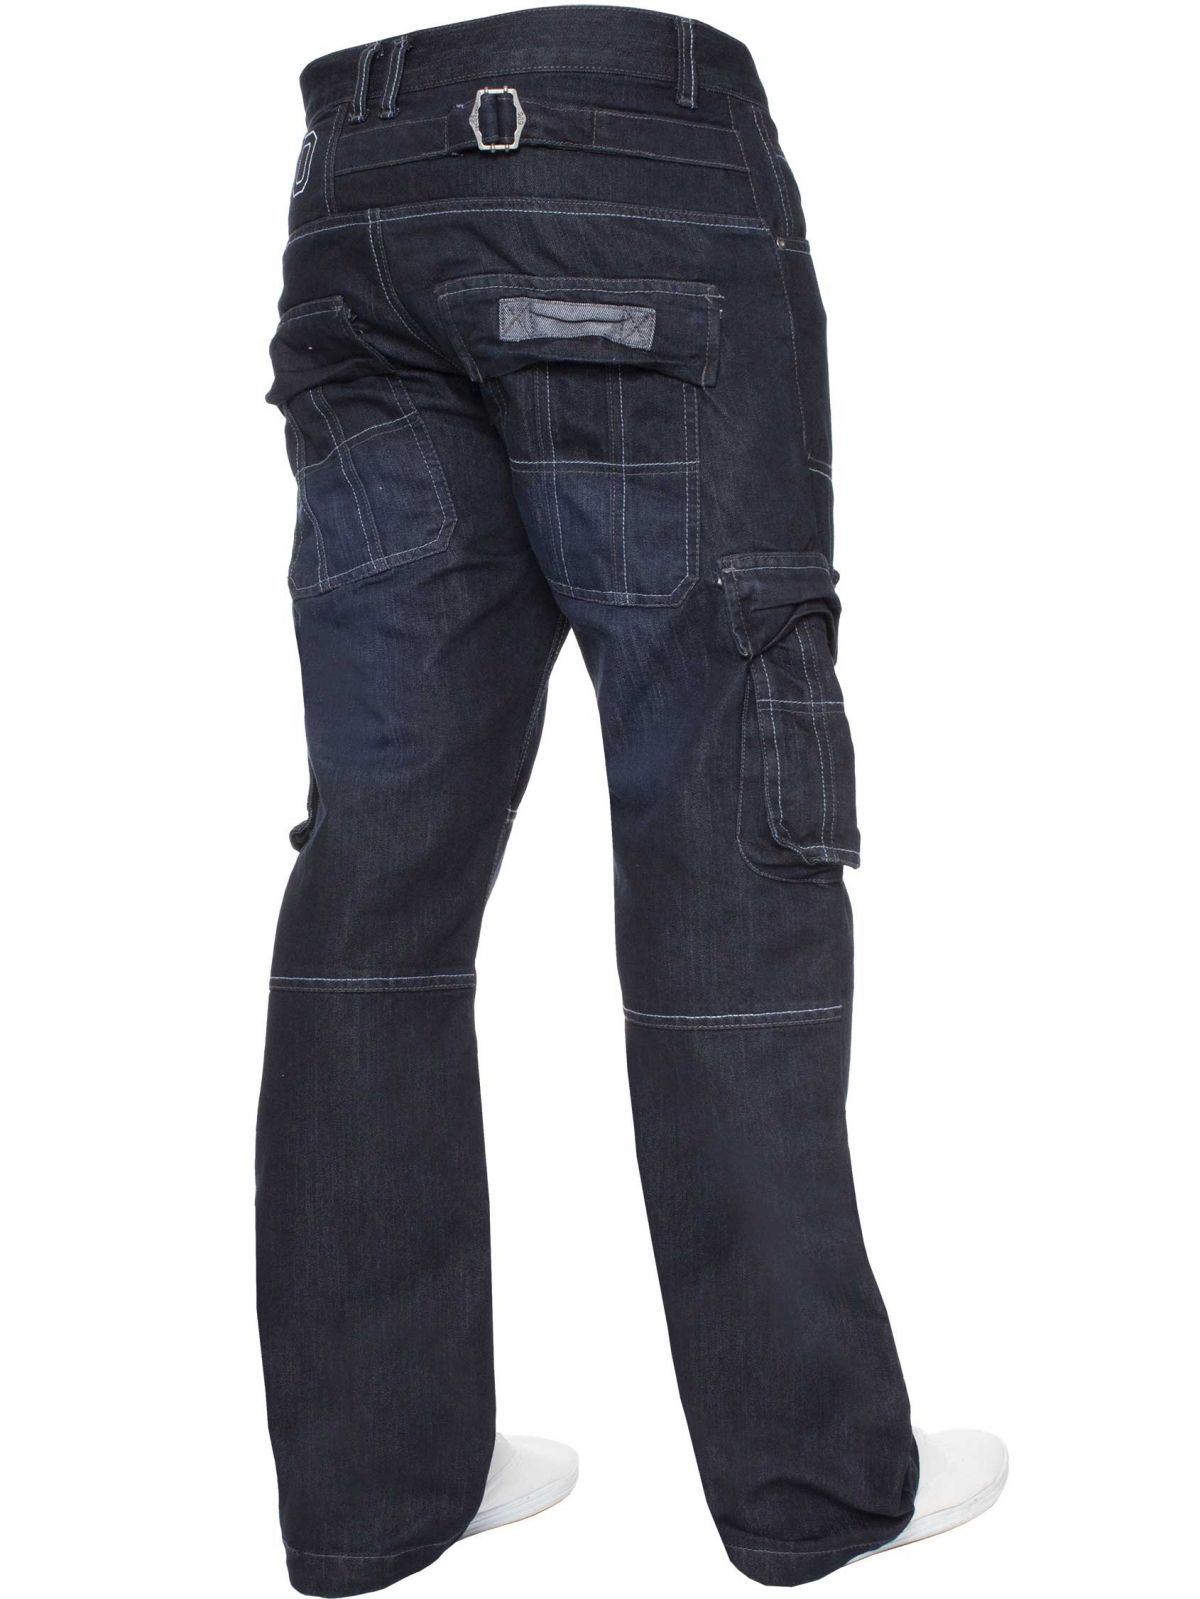 Mens Dark Blue Combat Denim Jeans | Enzo Designer Menswear